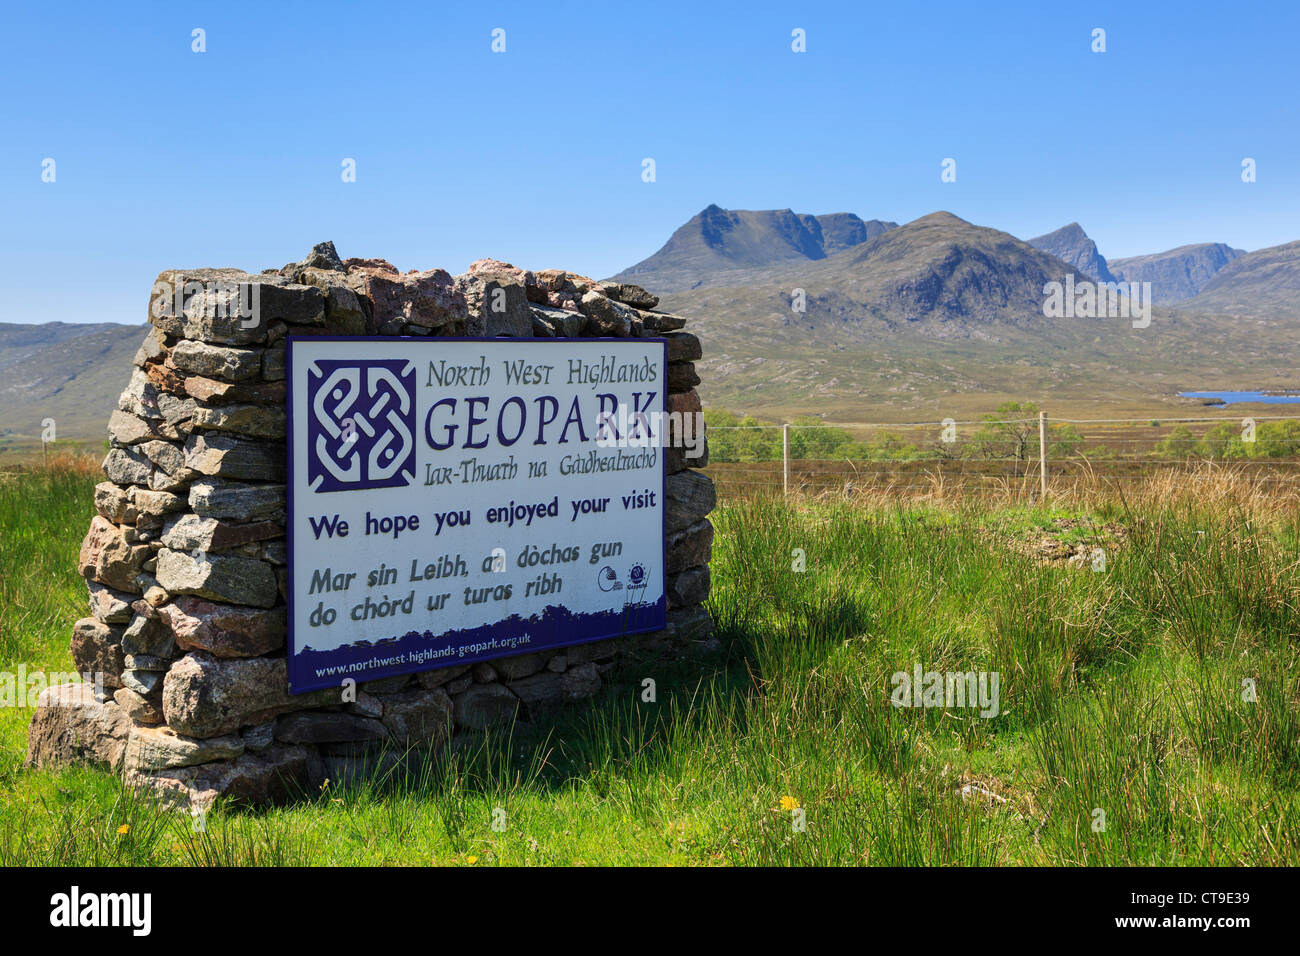 North West Highlands Geopark Gaelic bilingual sign with Ben More Coigach mountain beyond. Assynt, Ross and Cromarty, - Stock Image